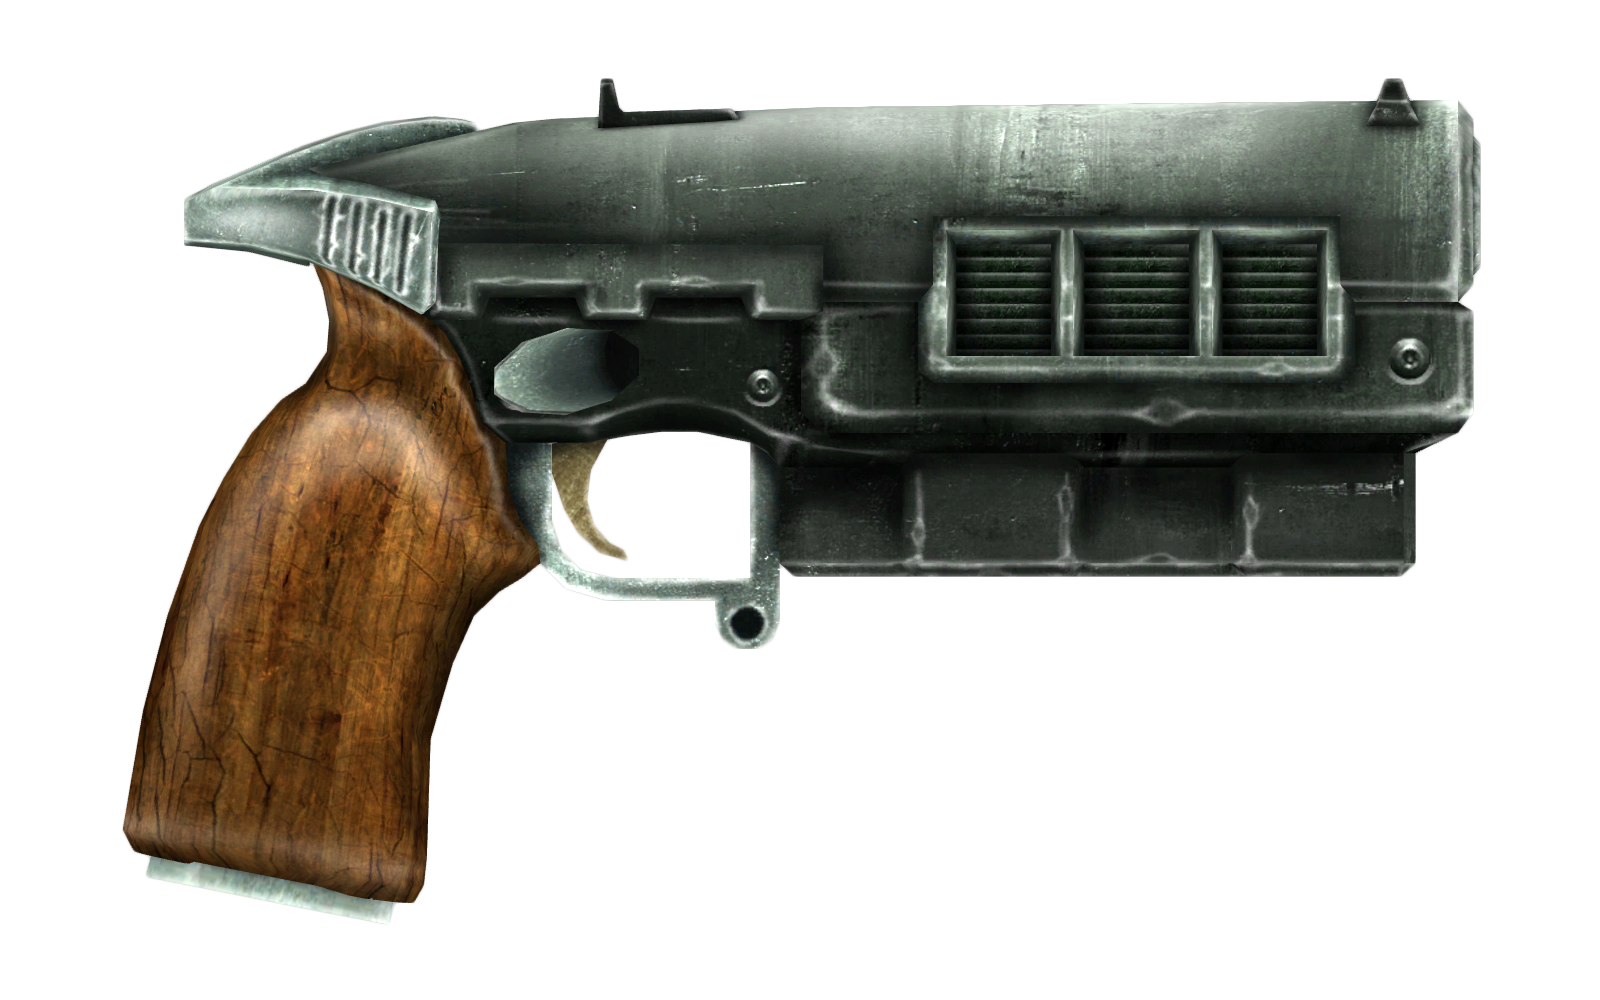 12 7mm pistol | Fallout Wiki | FANDOM powered by Wikia